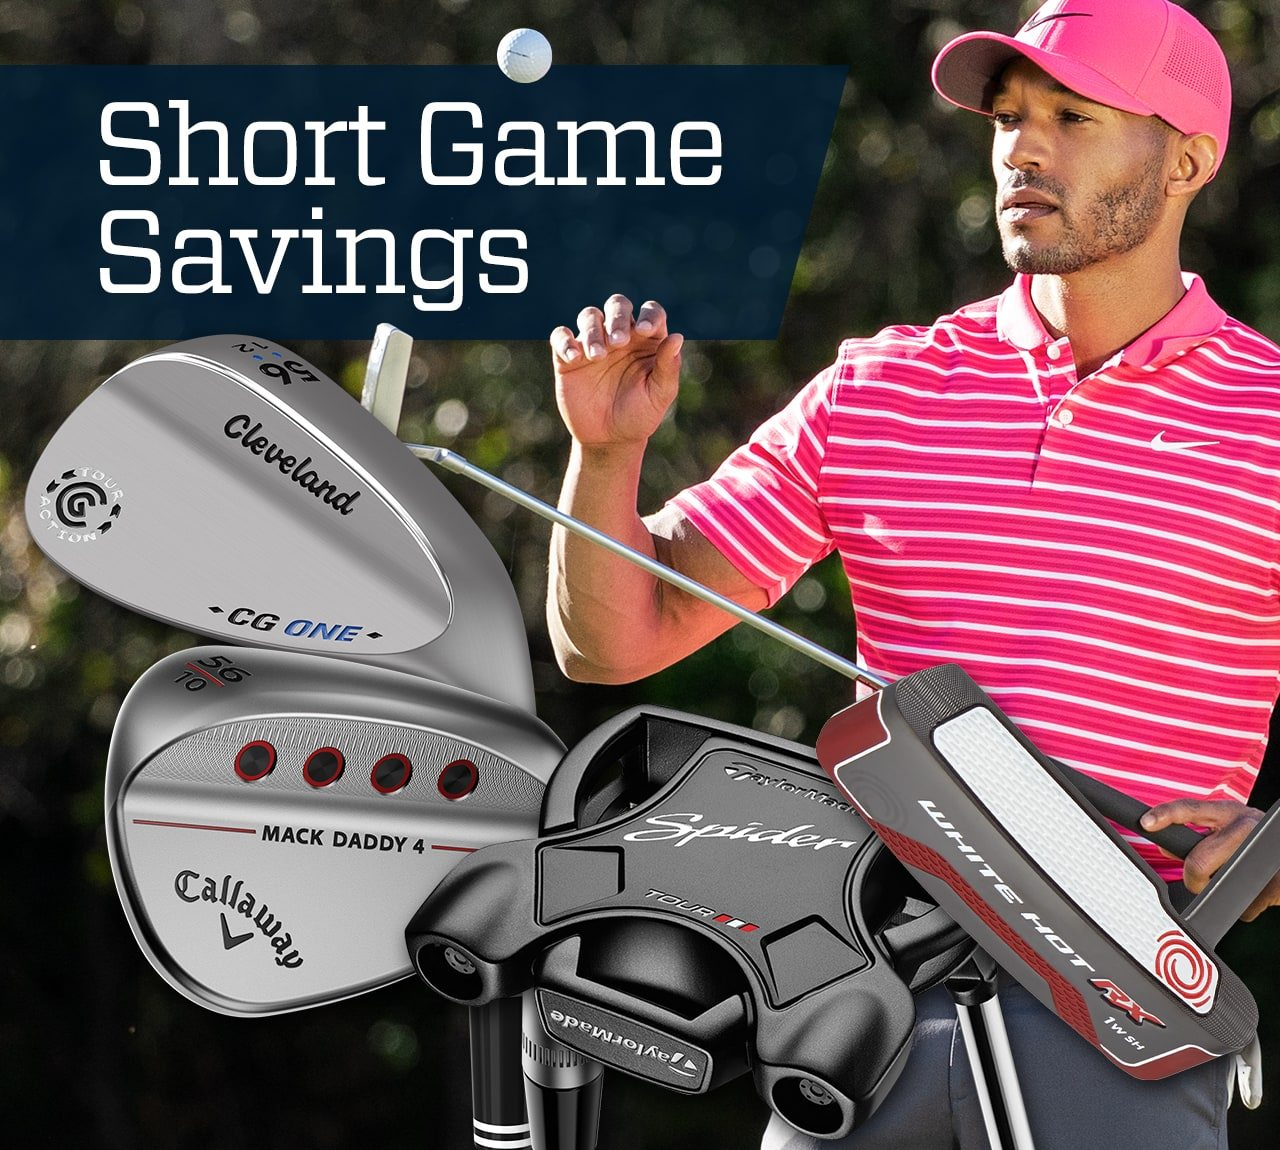 Short game savings